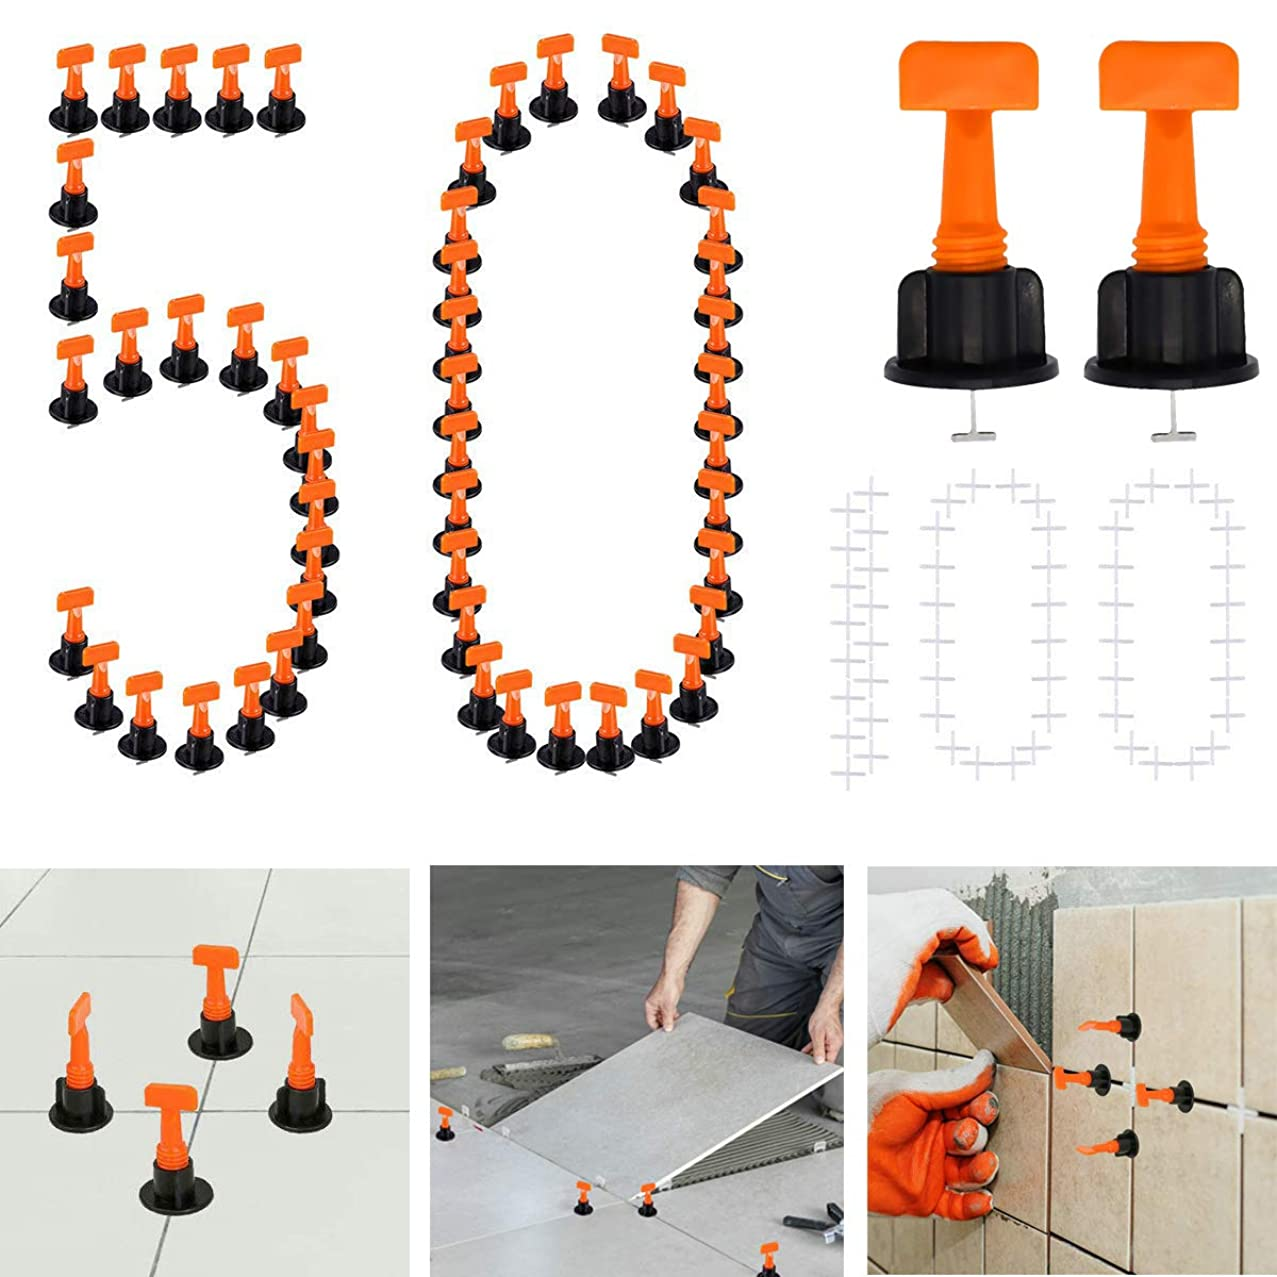 Tiles Leveling System Kits 50PCS DIY Tile Leveler Spacers and 2mm Tile Cross 100PCS, with Wrench, Reusable Flooring Level Tile levellers, Wall & Floor Construction Tools